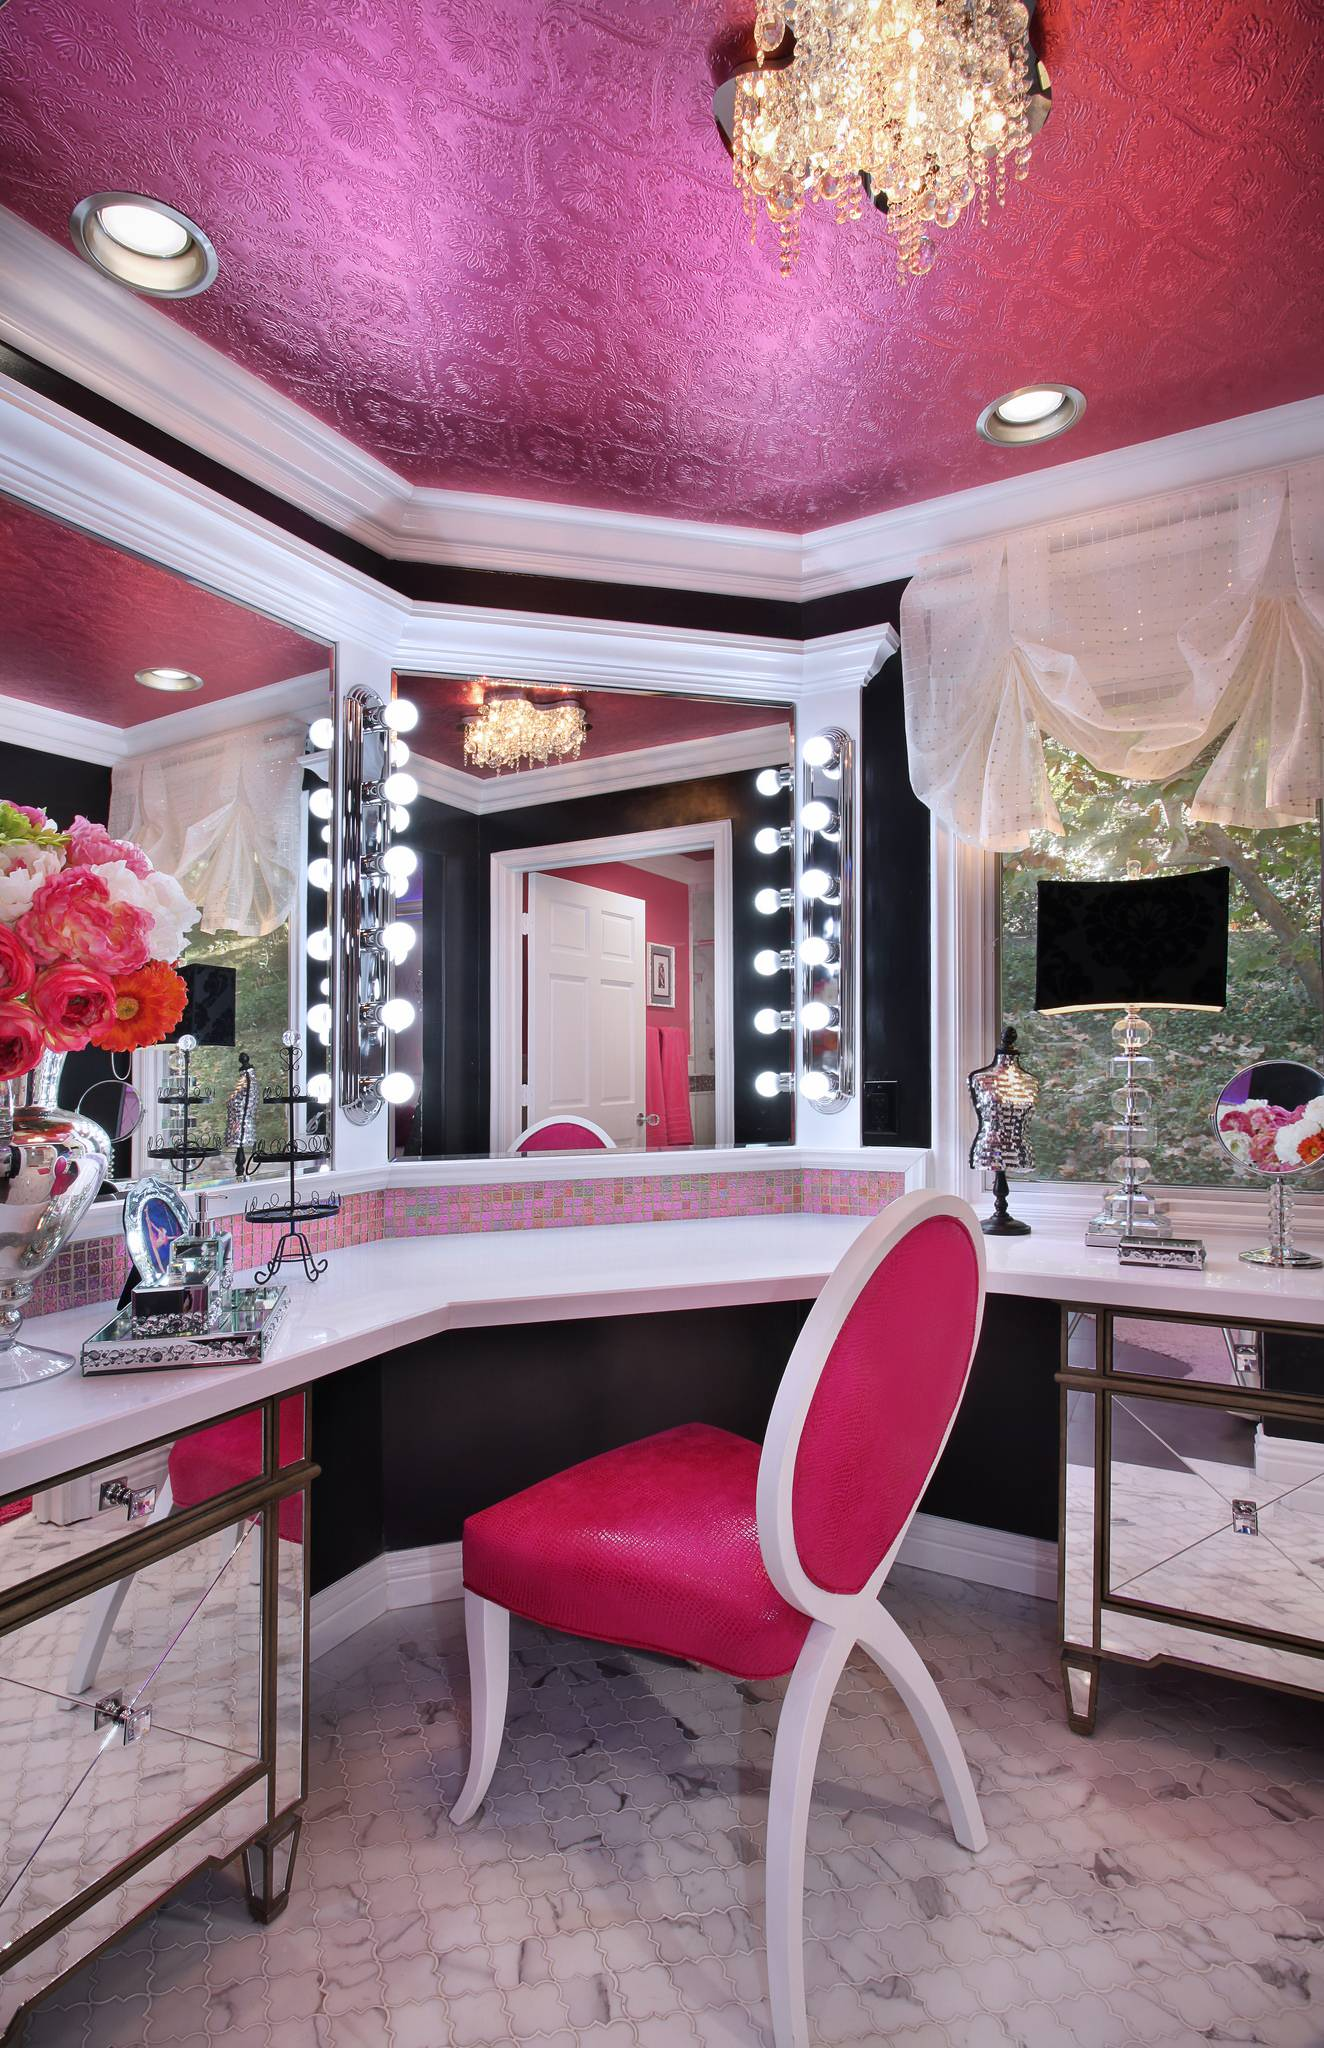 Glamour Home Decor 7 Steps To Your Own Kylie Jenner Inspired Glam Room